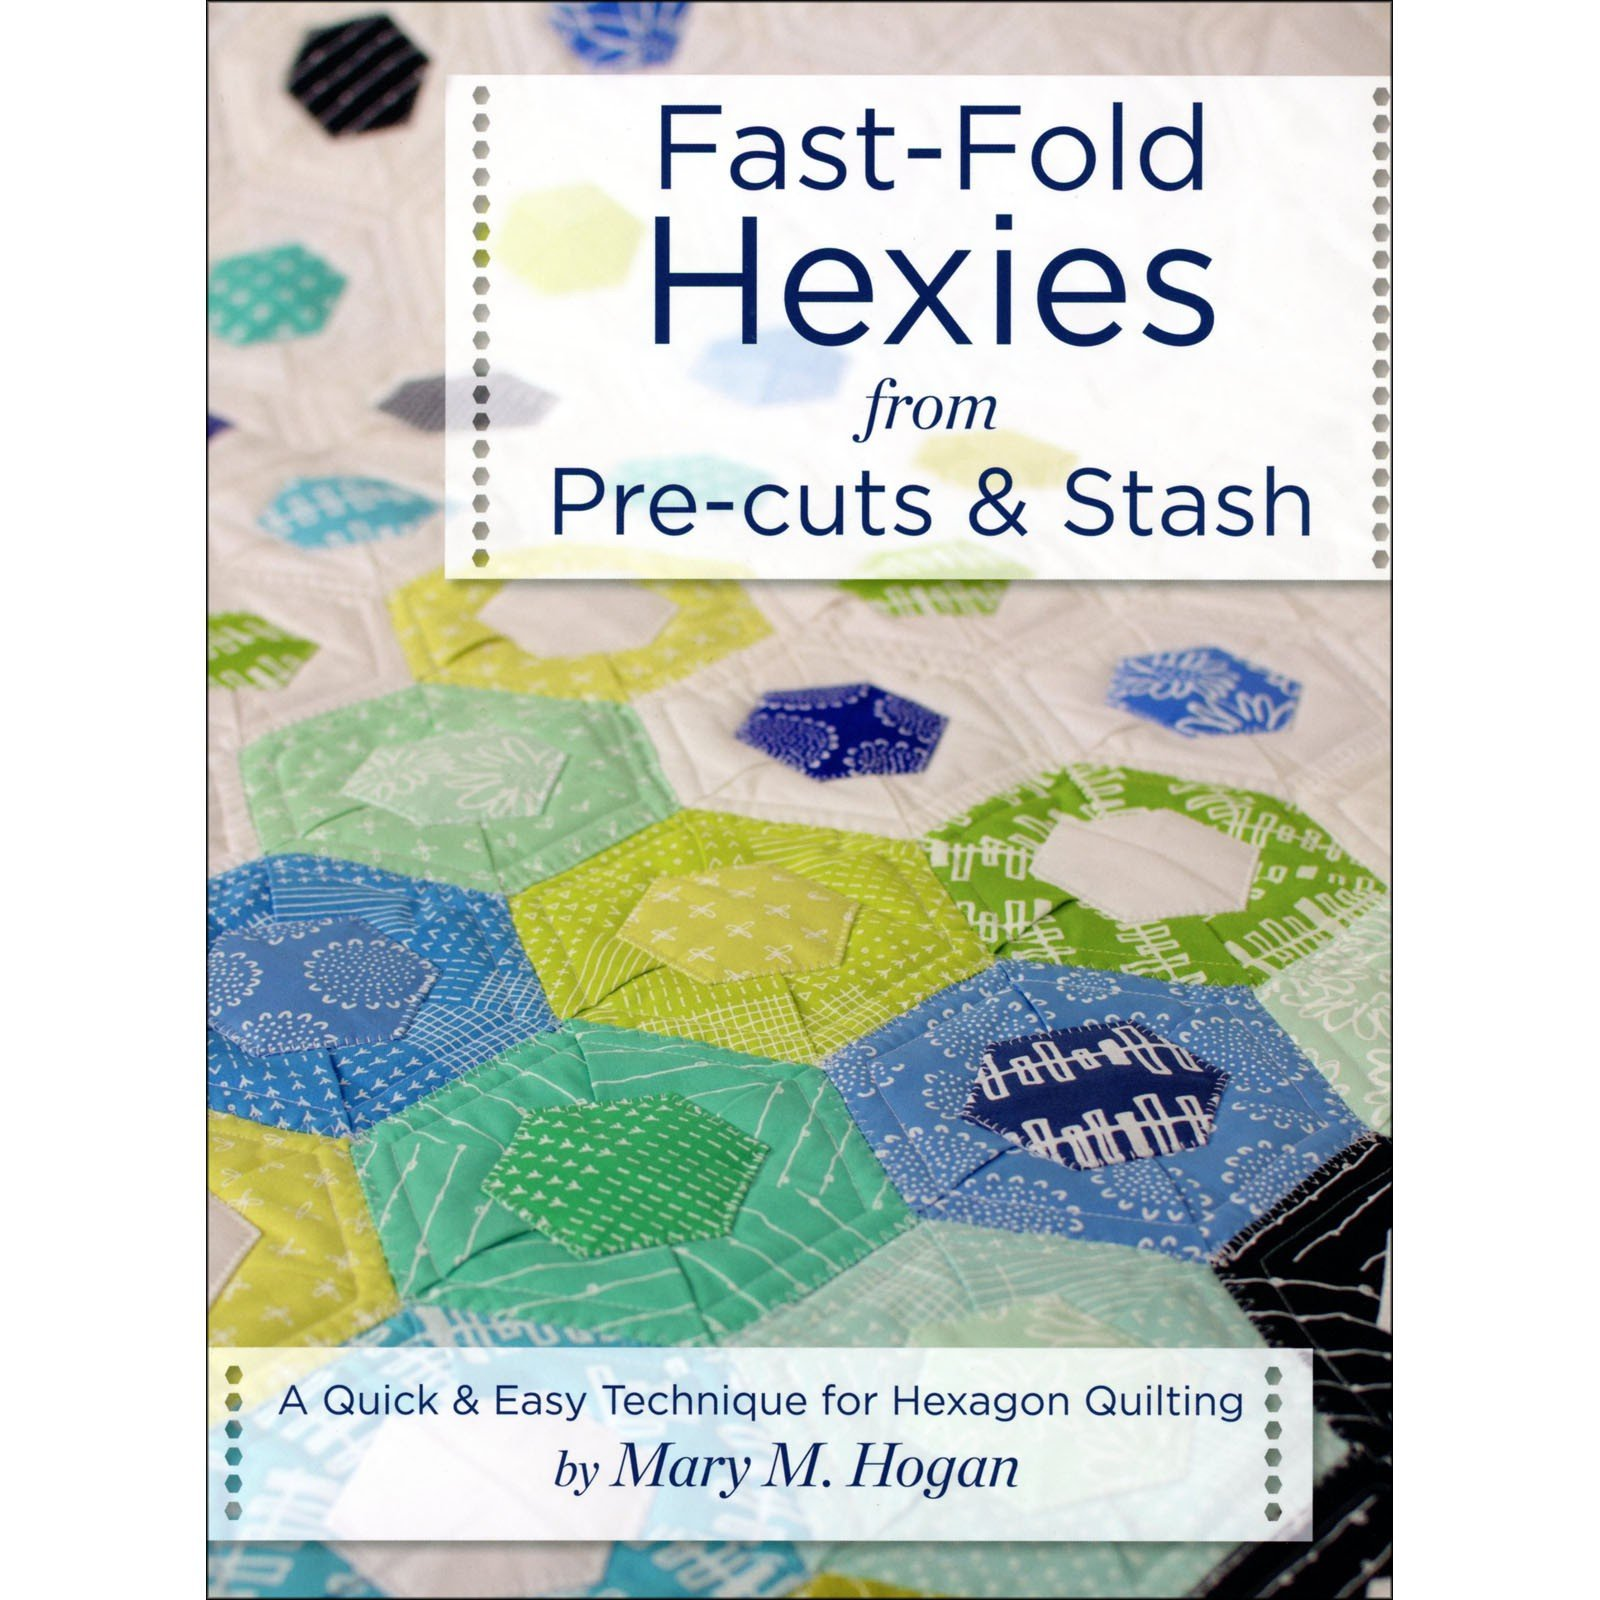 Fast Fold Hexies from Pre-cuts & Stash